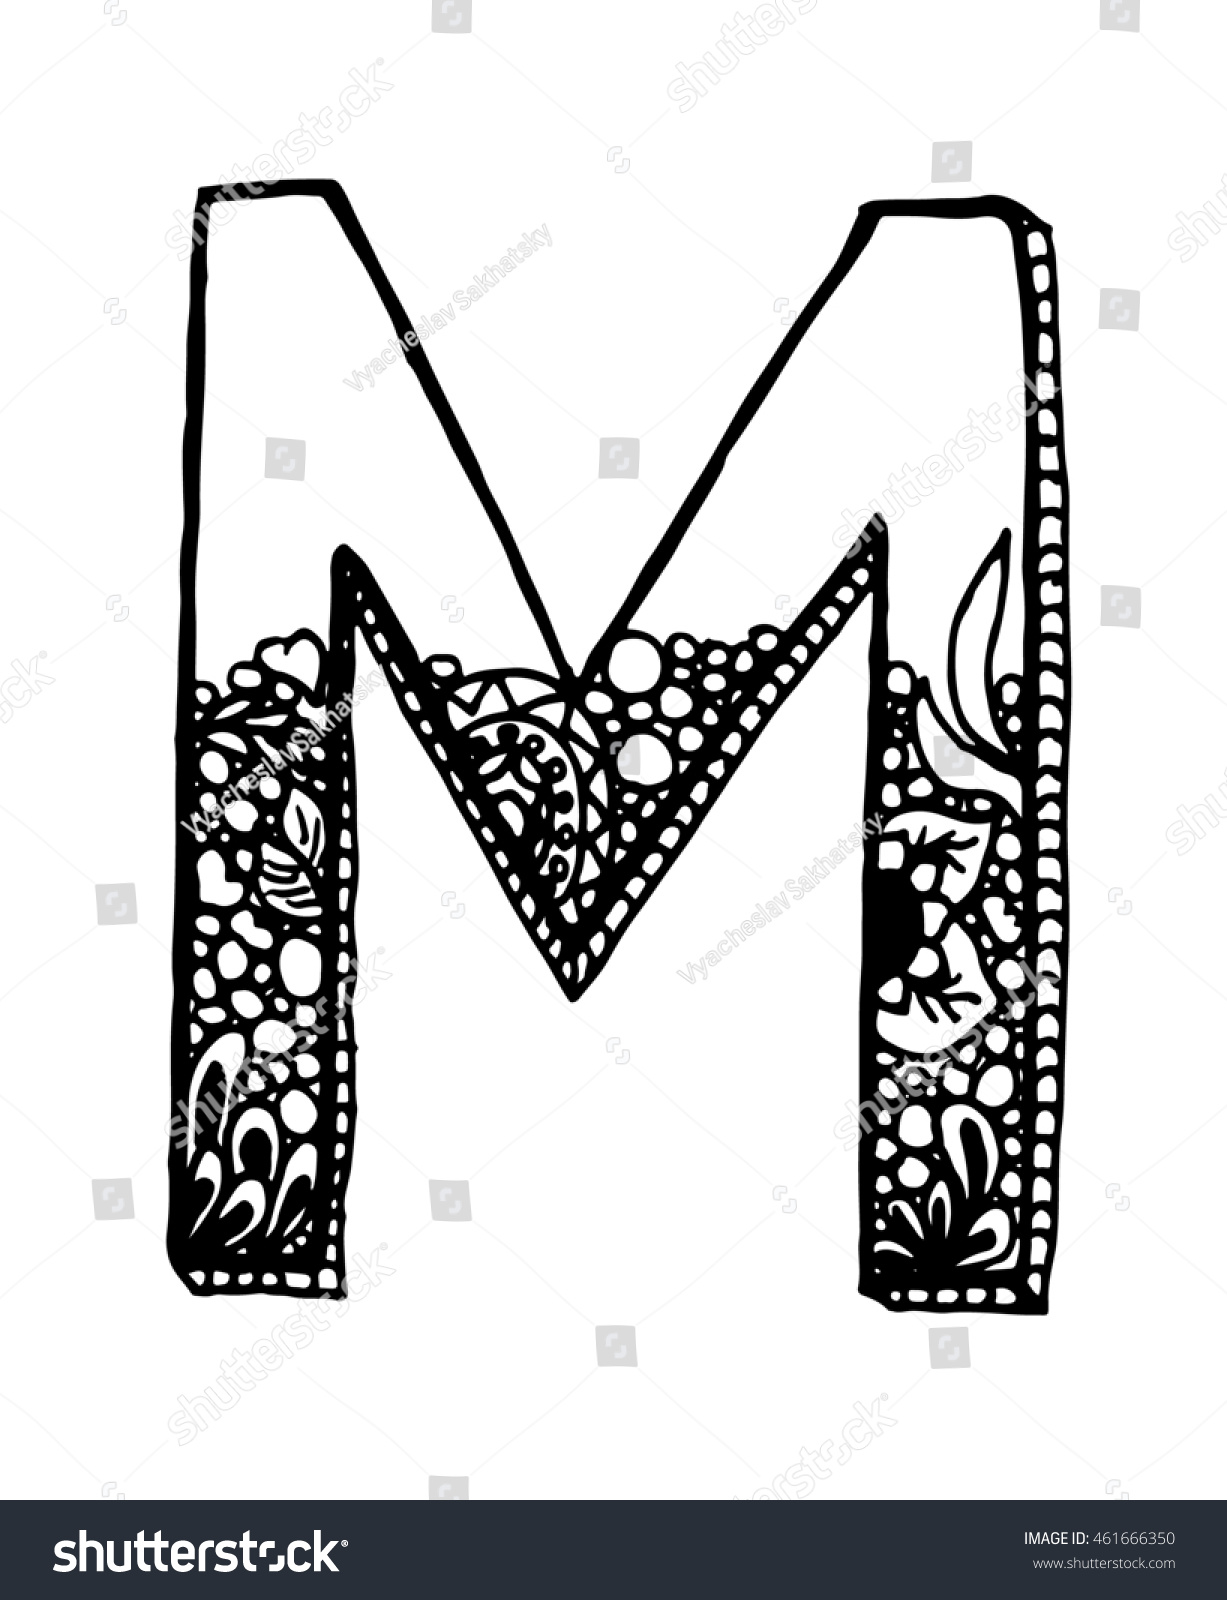 Letter M With Ornament On White Background Free Hand Drawn Vector